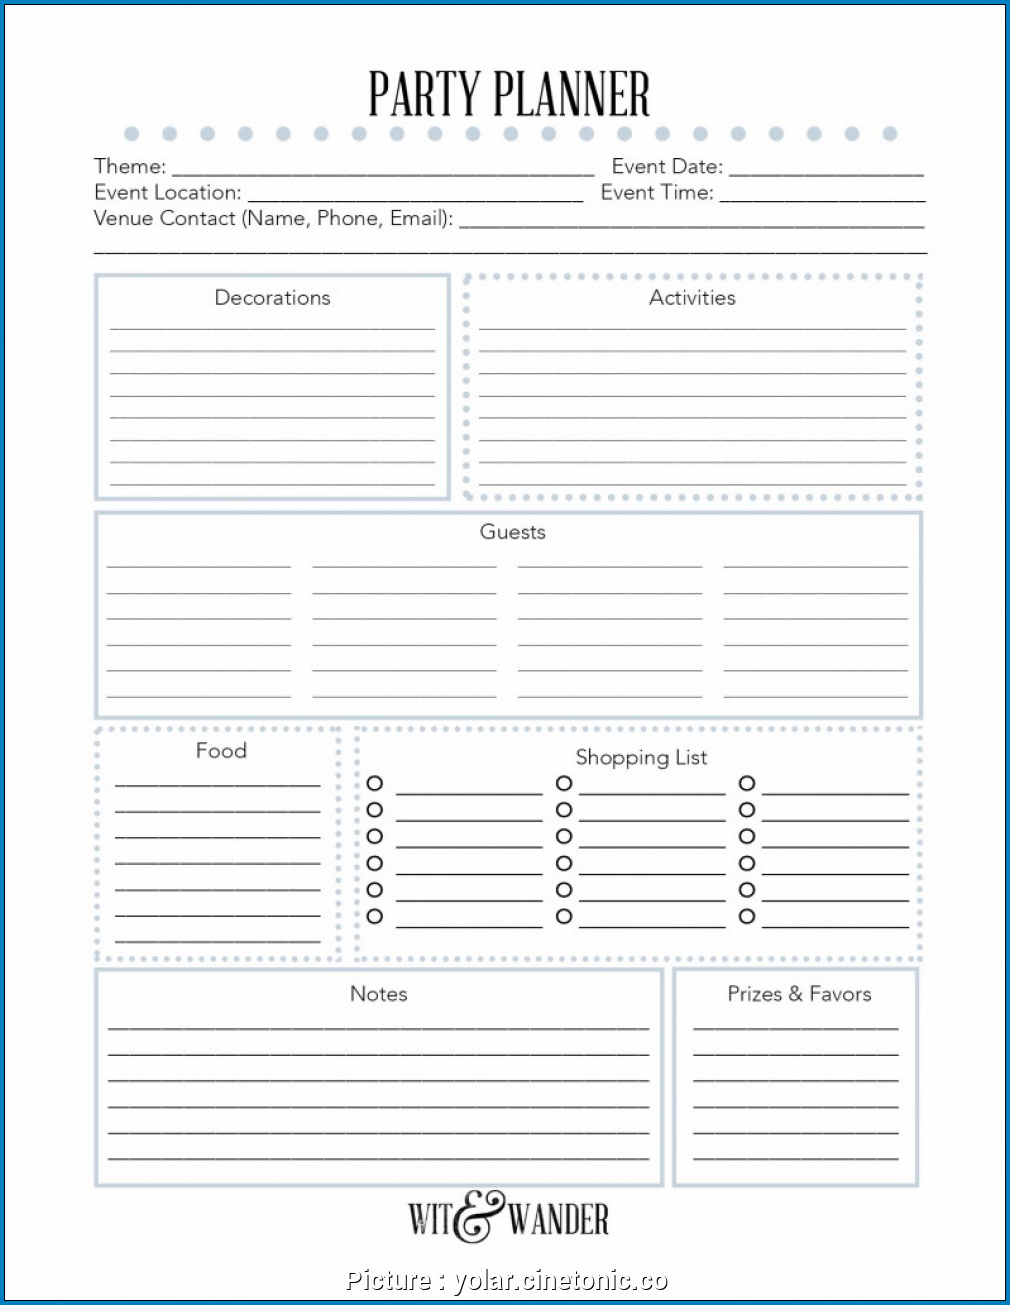 Example of Party Planner Checklist Template